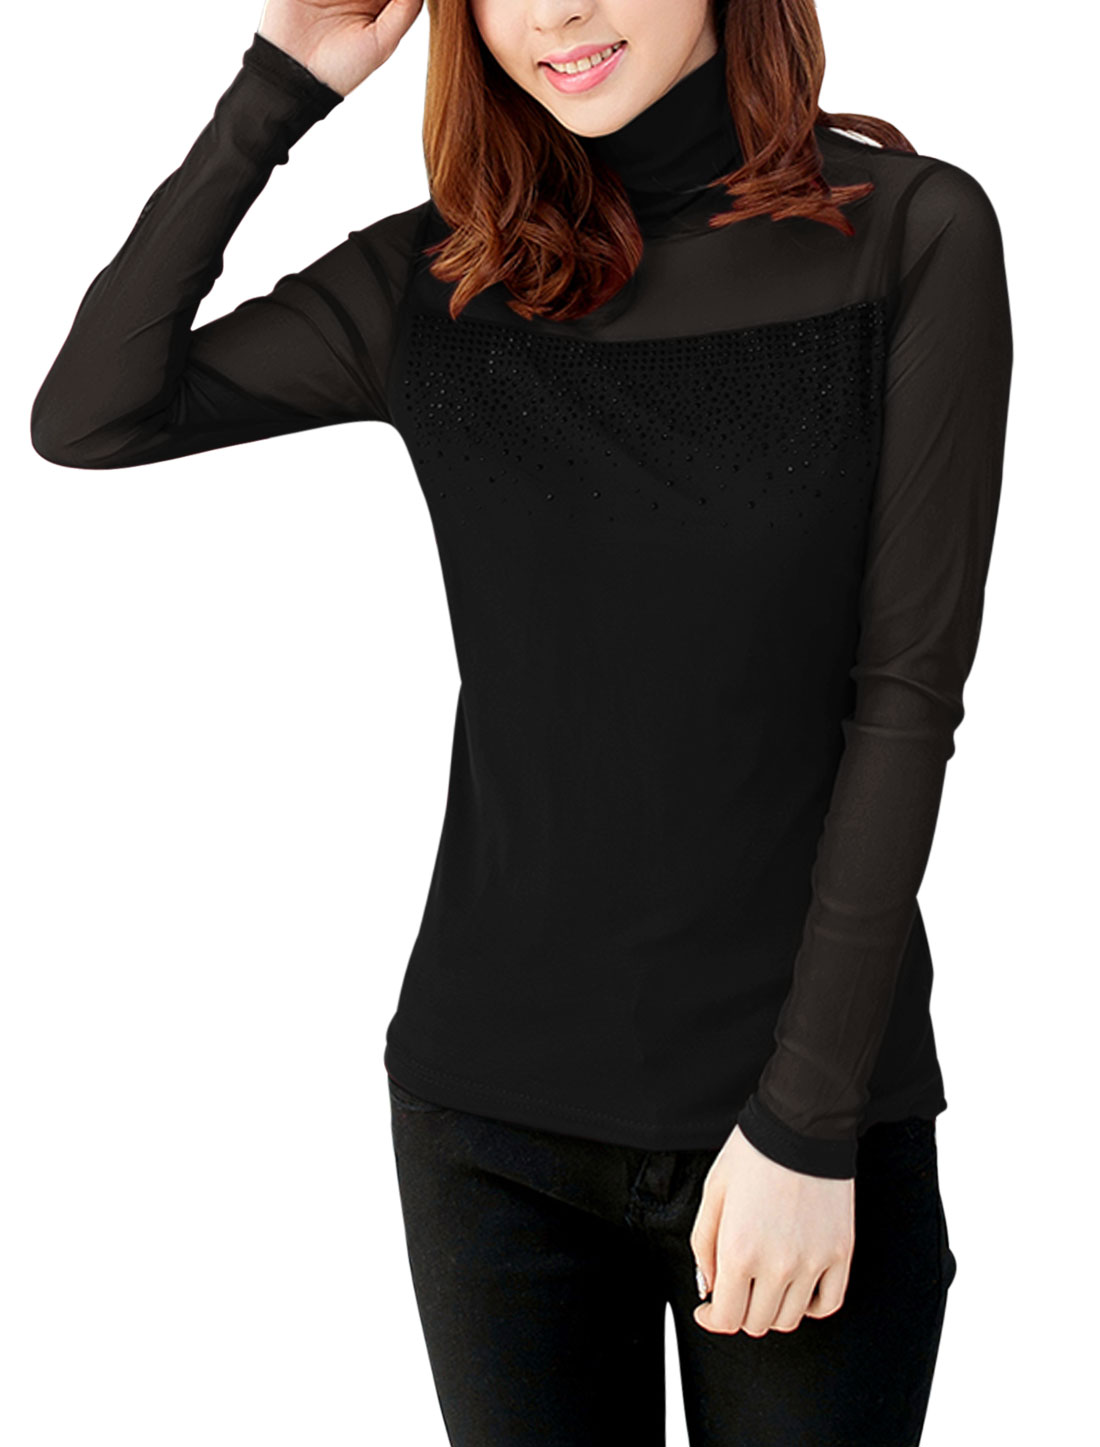 Women Sexy See Through Yoke w Sleeve Slim Mesh Top Black S